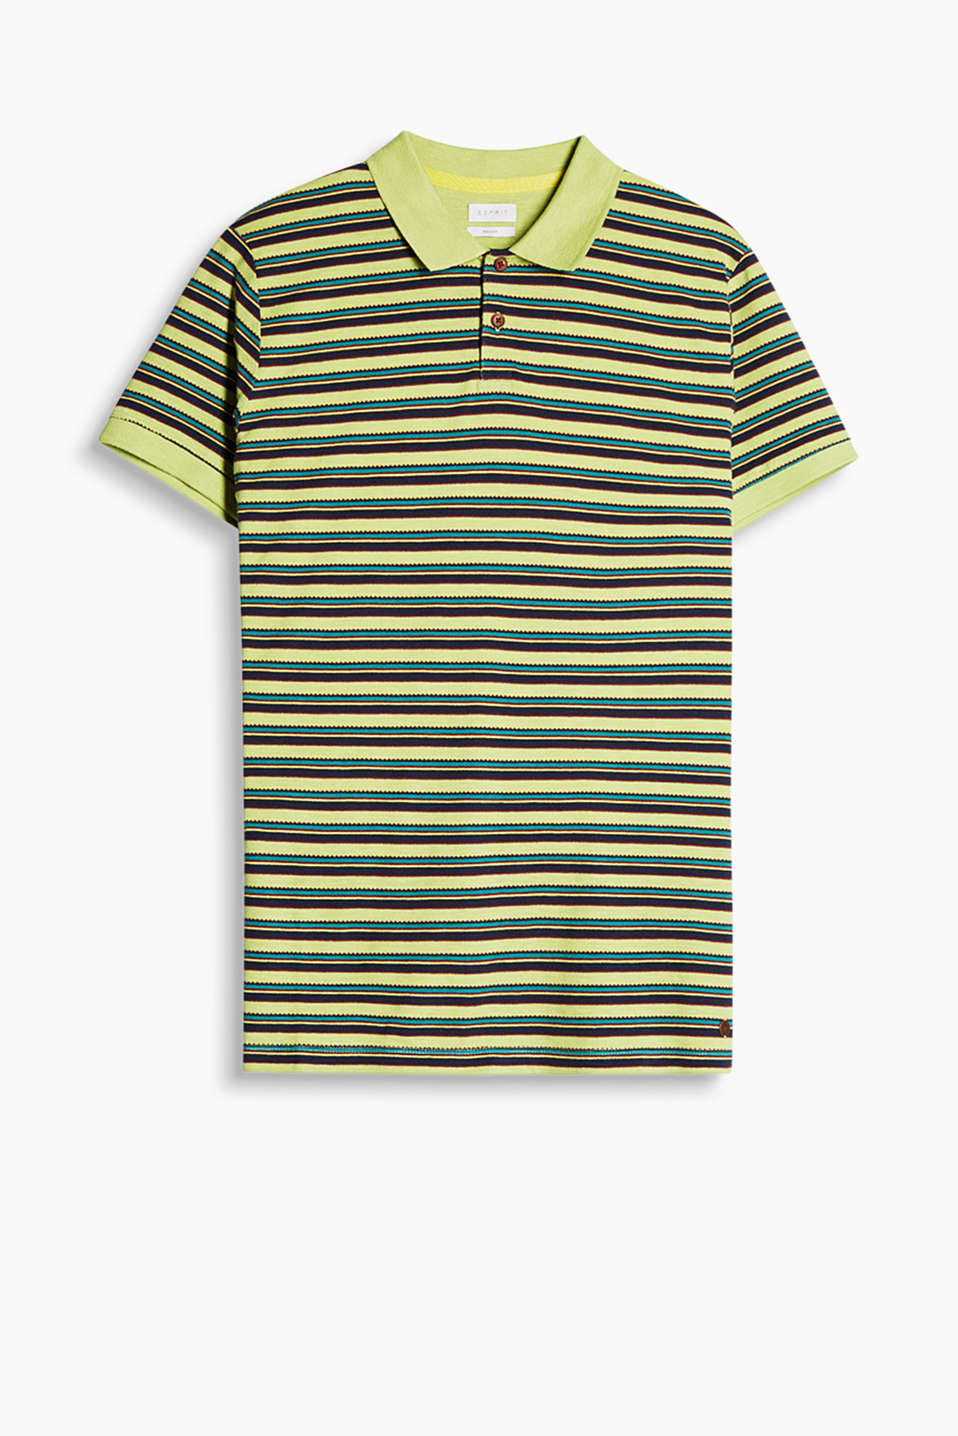 Vibrantly patterned polo shirt made of fine piqué fabric, 100% cotton